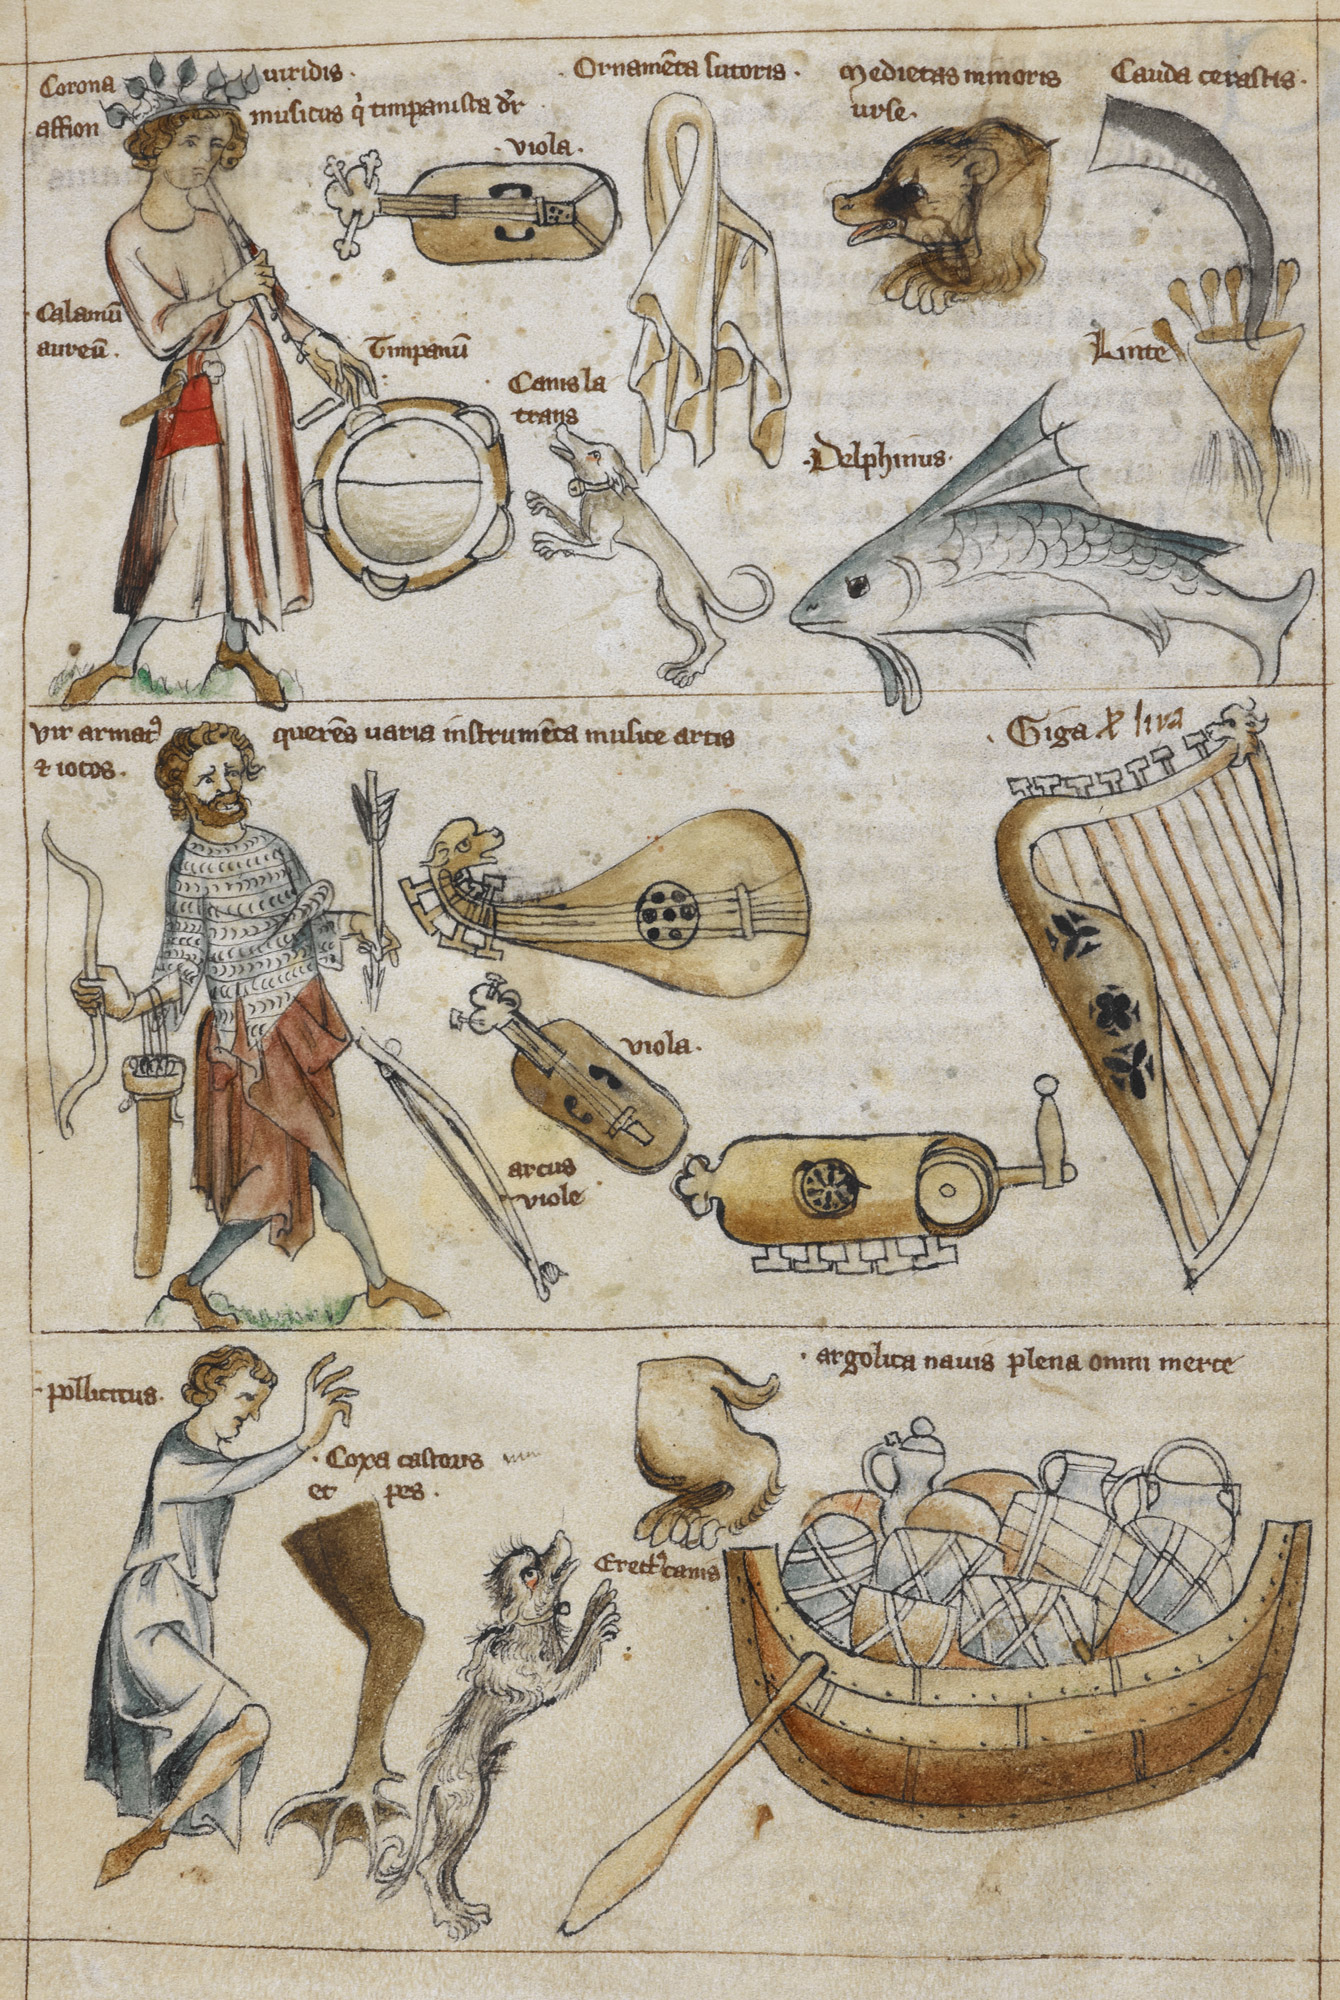 Instruments including a harp, viola, lute and hurdy-gurdy